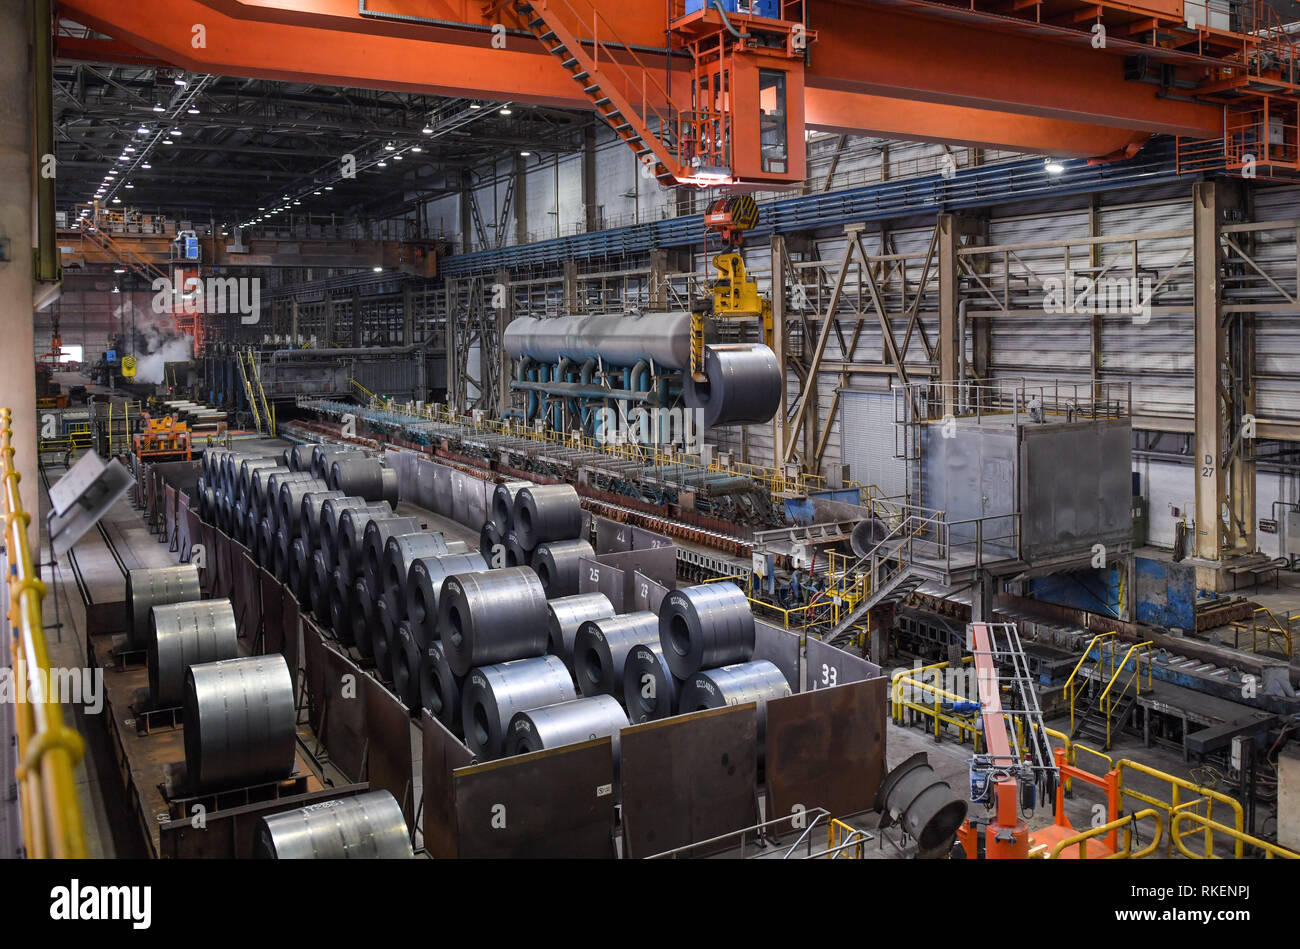 11 February 2019, Brandenburg, Eisenhüttenstadt: View into the huge workshop of the hot rolling mill at ArcelorMittal Eisenhüttenstadt. The inaugural visit of Brandenburg's new Minister of Economic Affairs, Steinbach (SPD), to the steel company on the Oder River included current topics on industrial and trade policy as well as climate protection. Photo: Patrick Pleul/dpa-Zentralbild/ZB - Stock Image